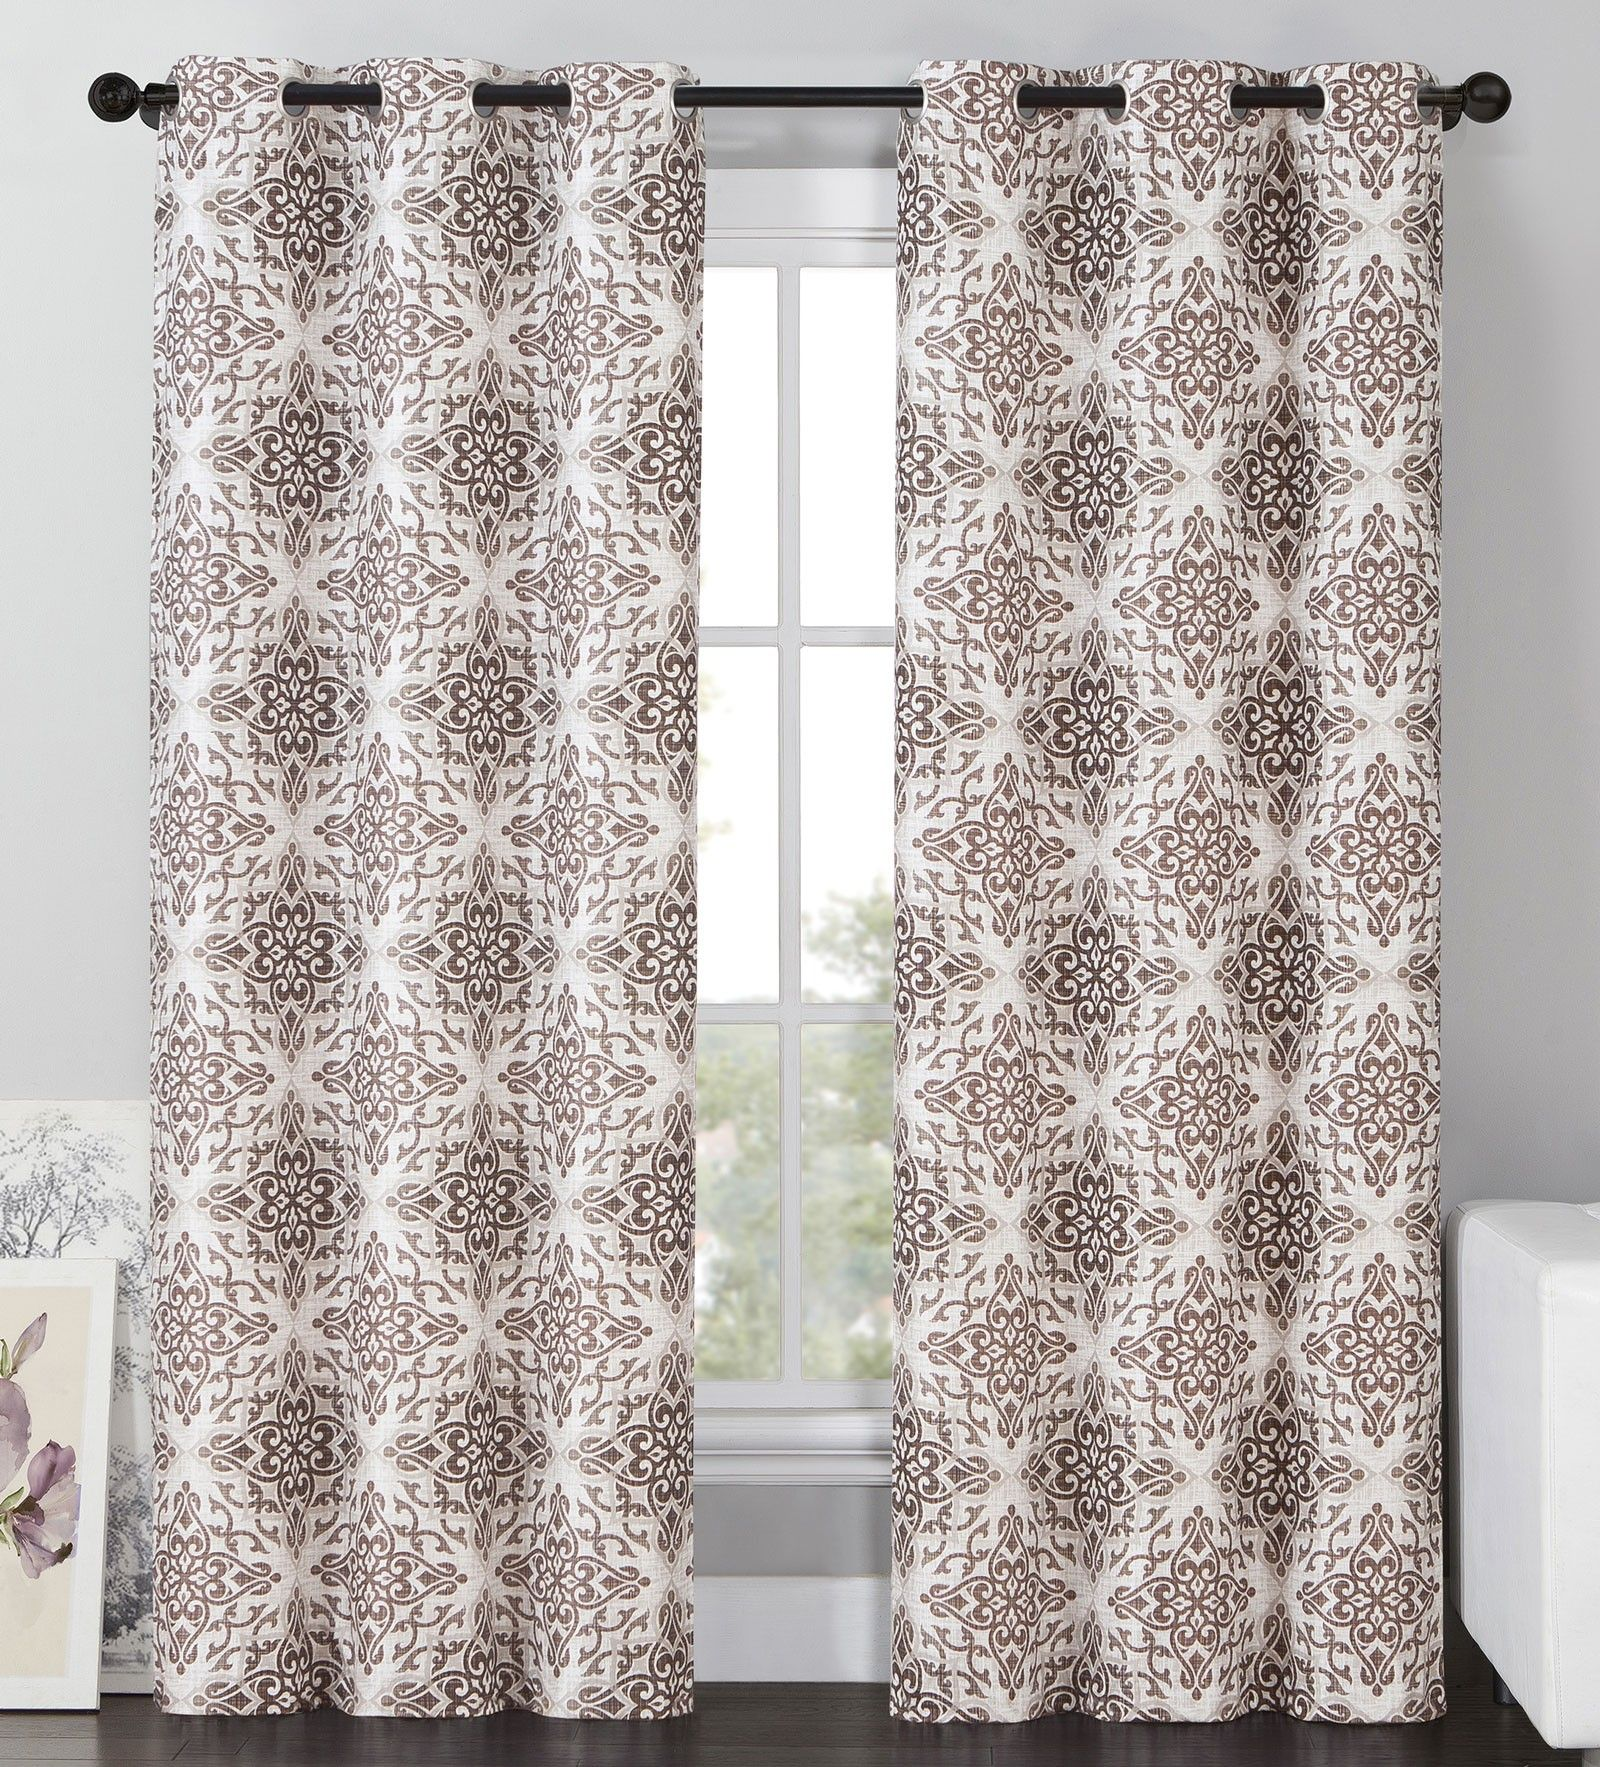 Olive green window panel in curtains amp drapes compare prices - Vcny Sylvia Blackout Window Curtains Grommet Thermal 2 Panel Set Brown Medallion 84 Length